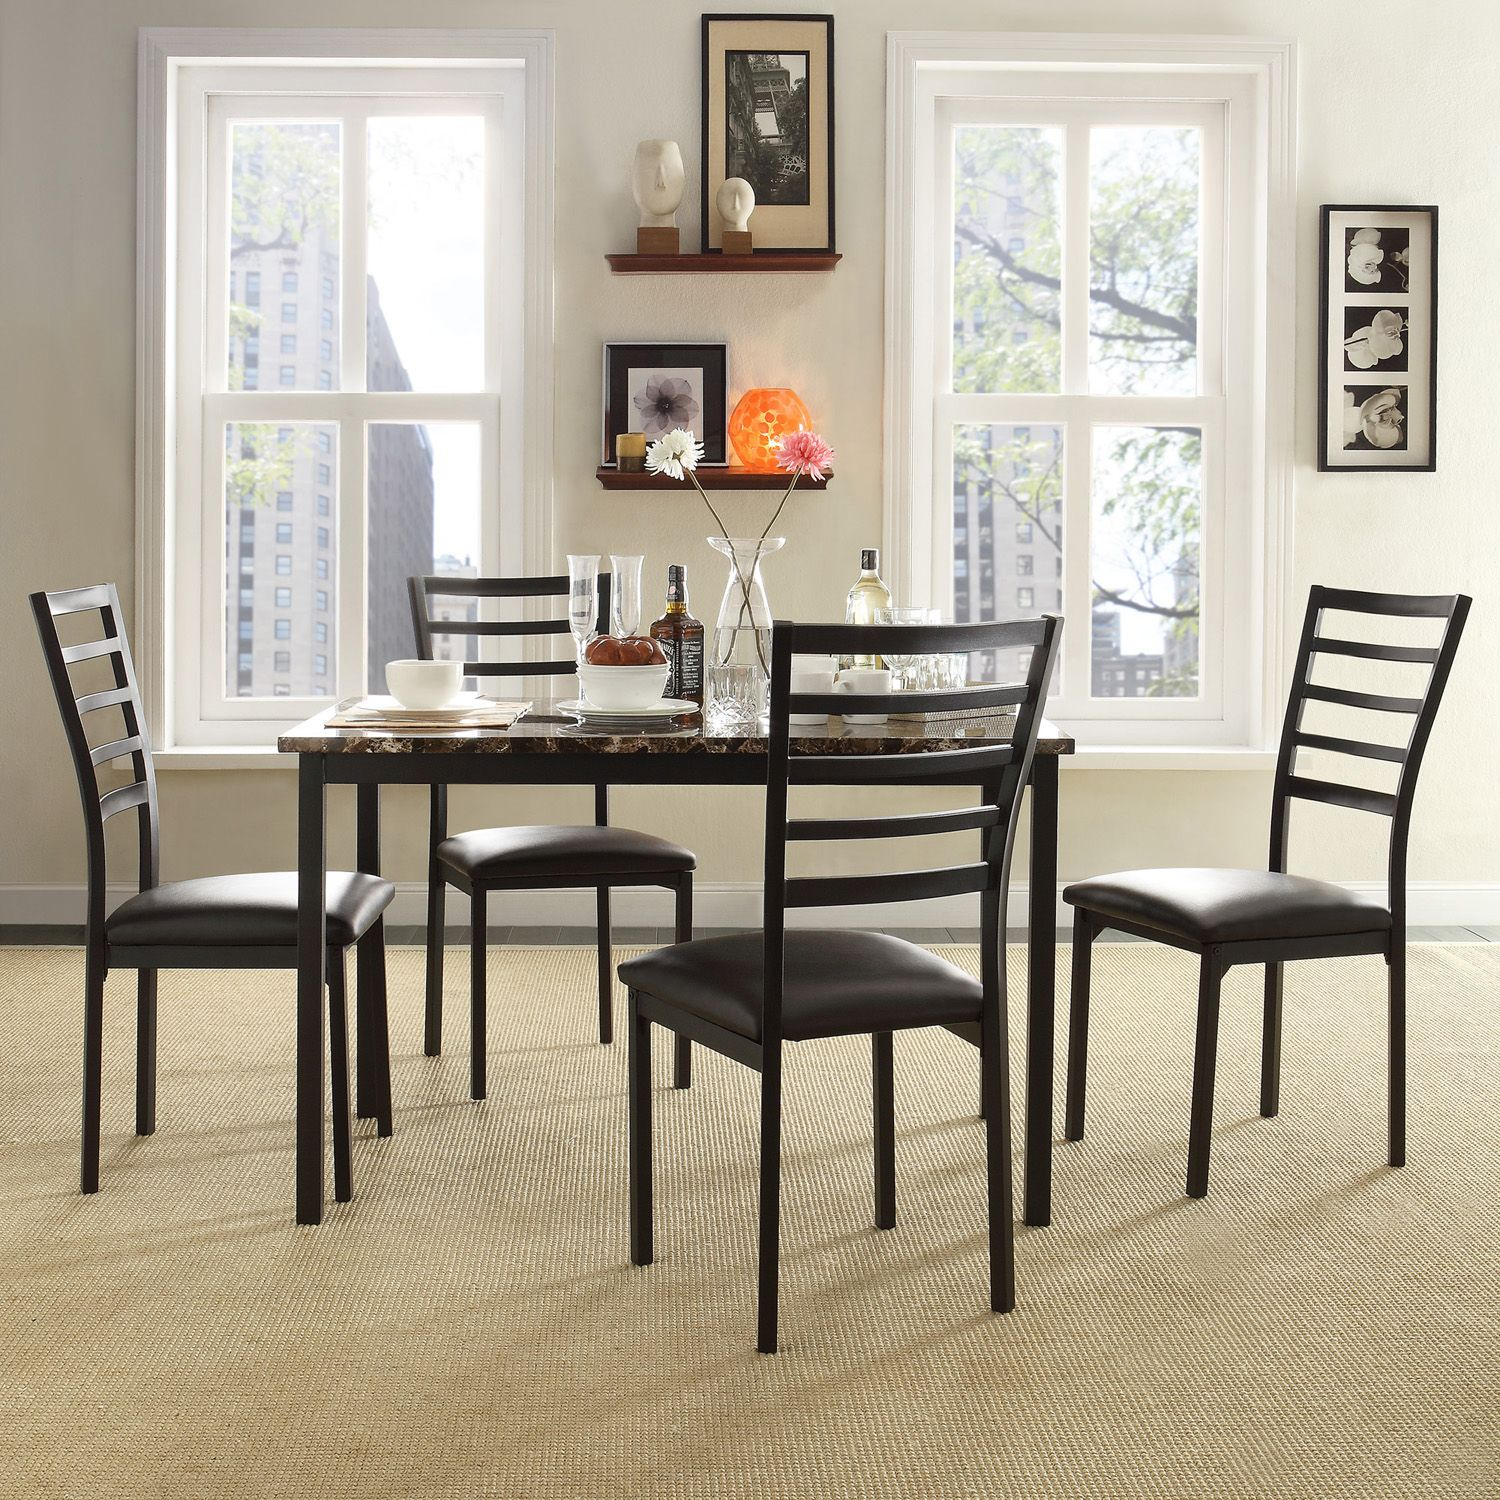 HomeVance 5 Piece Stinson Faux Marble Dining Set